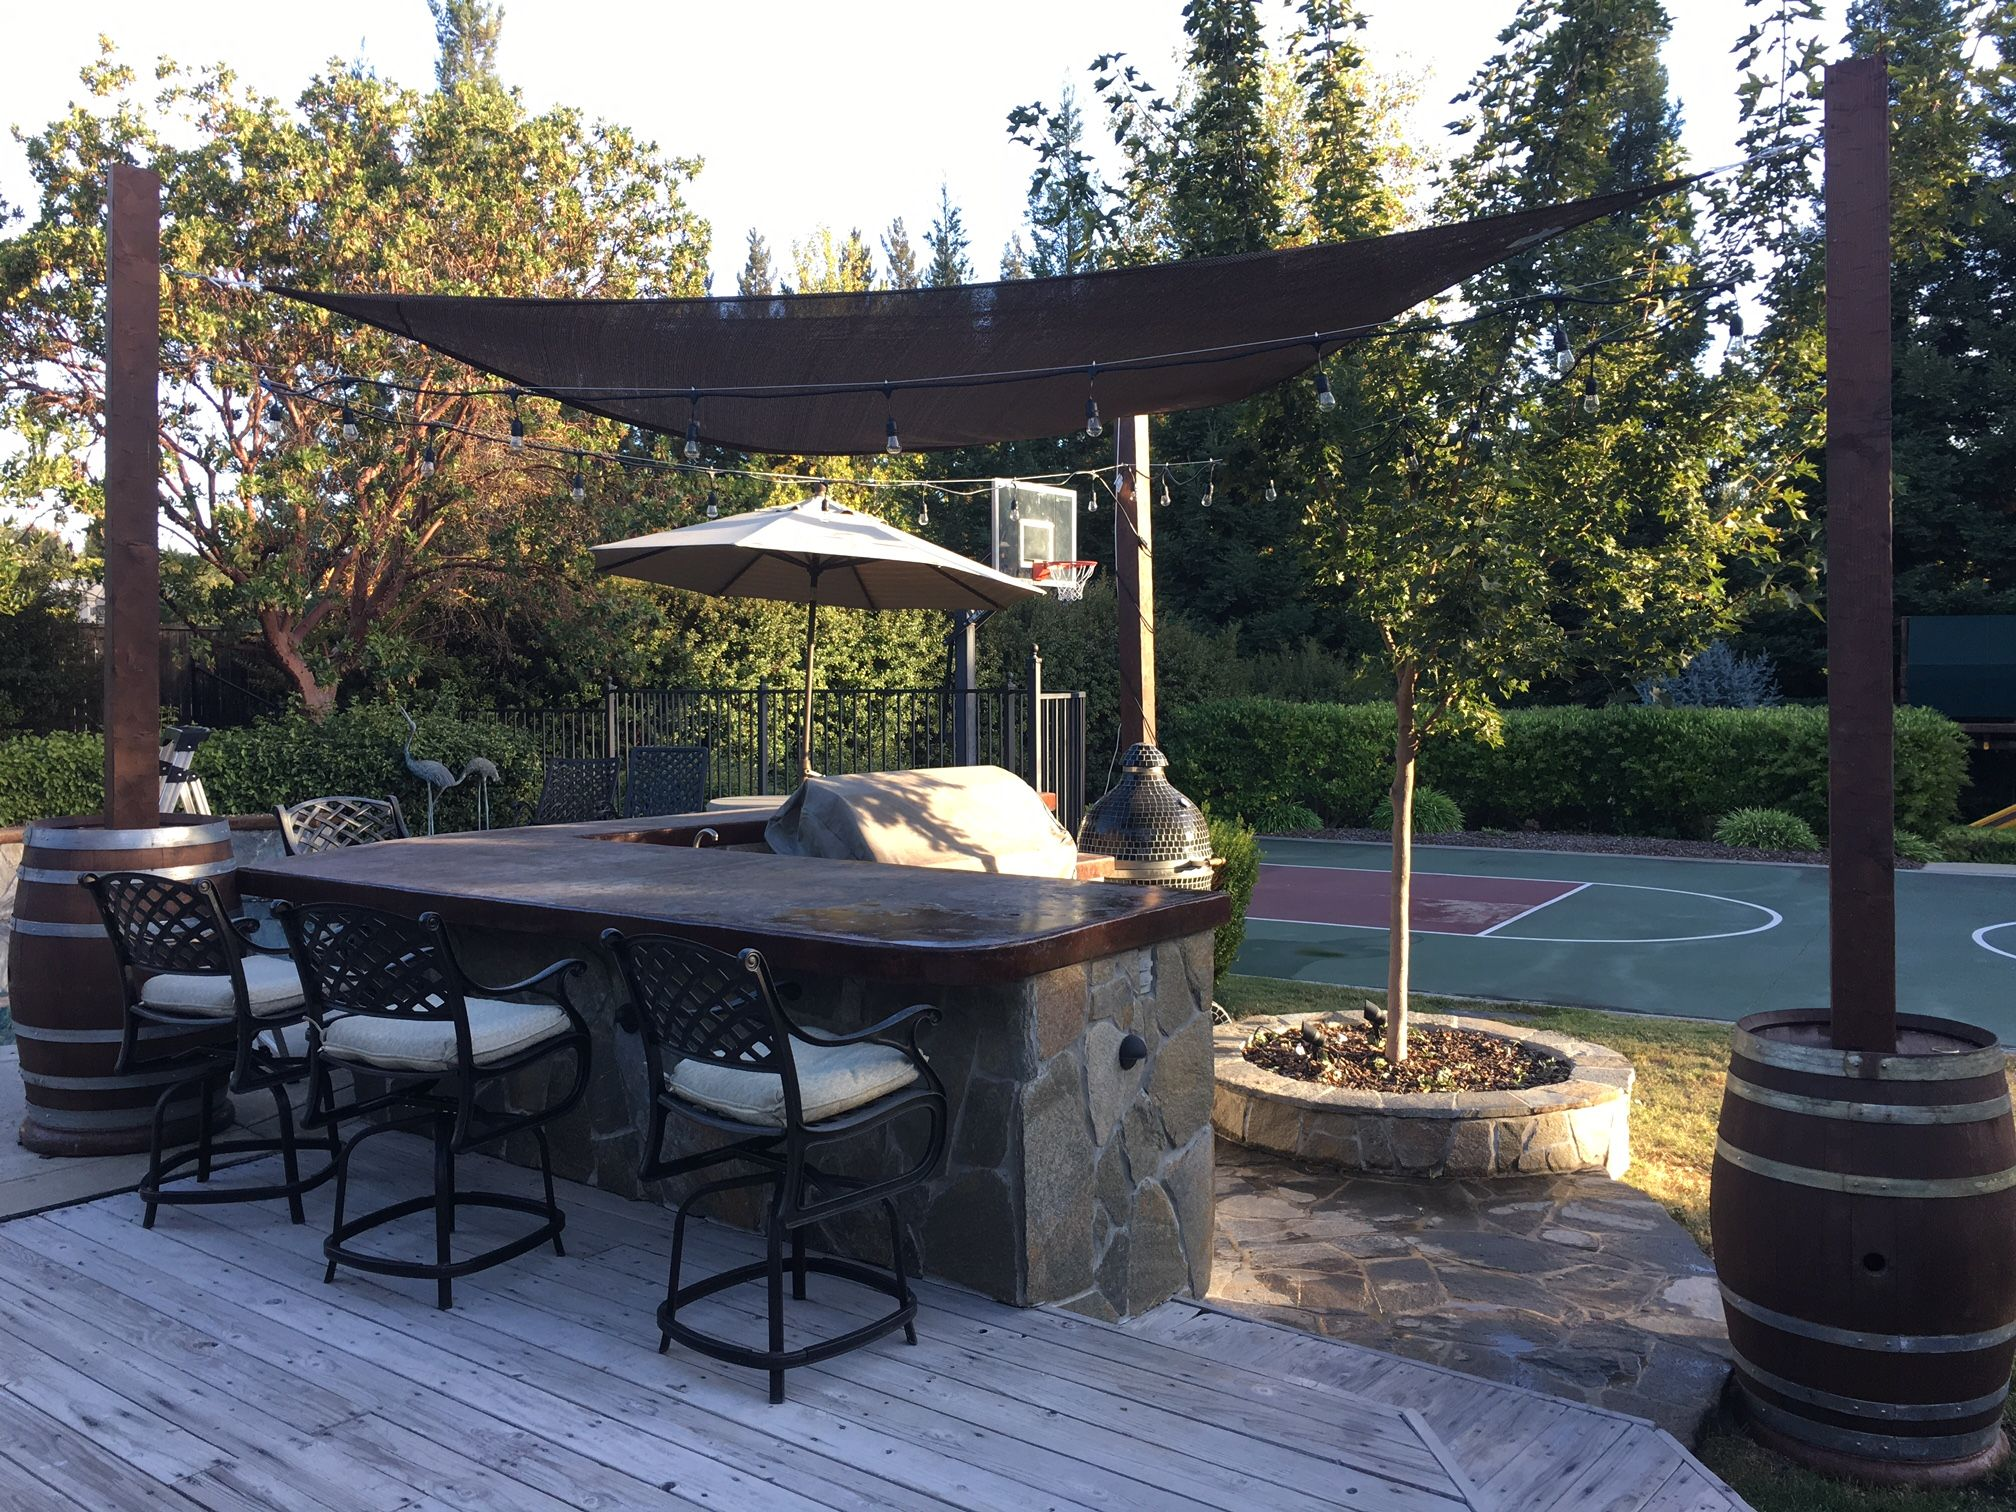 shade sail attached to wine barrels in outdoor bar area doing